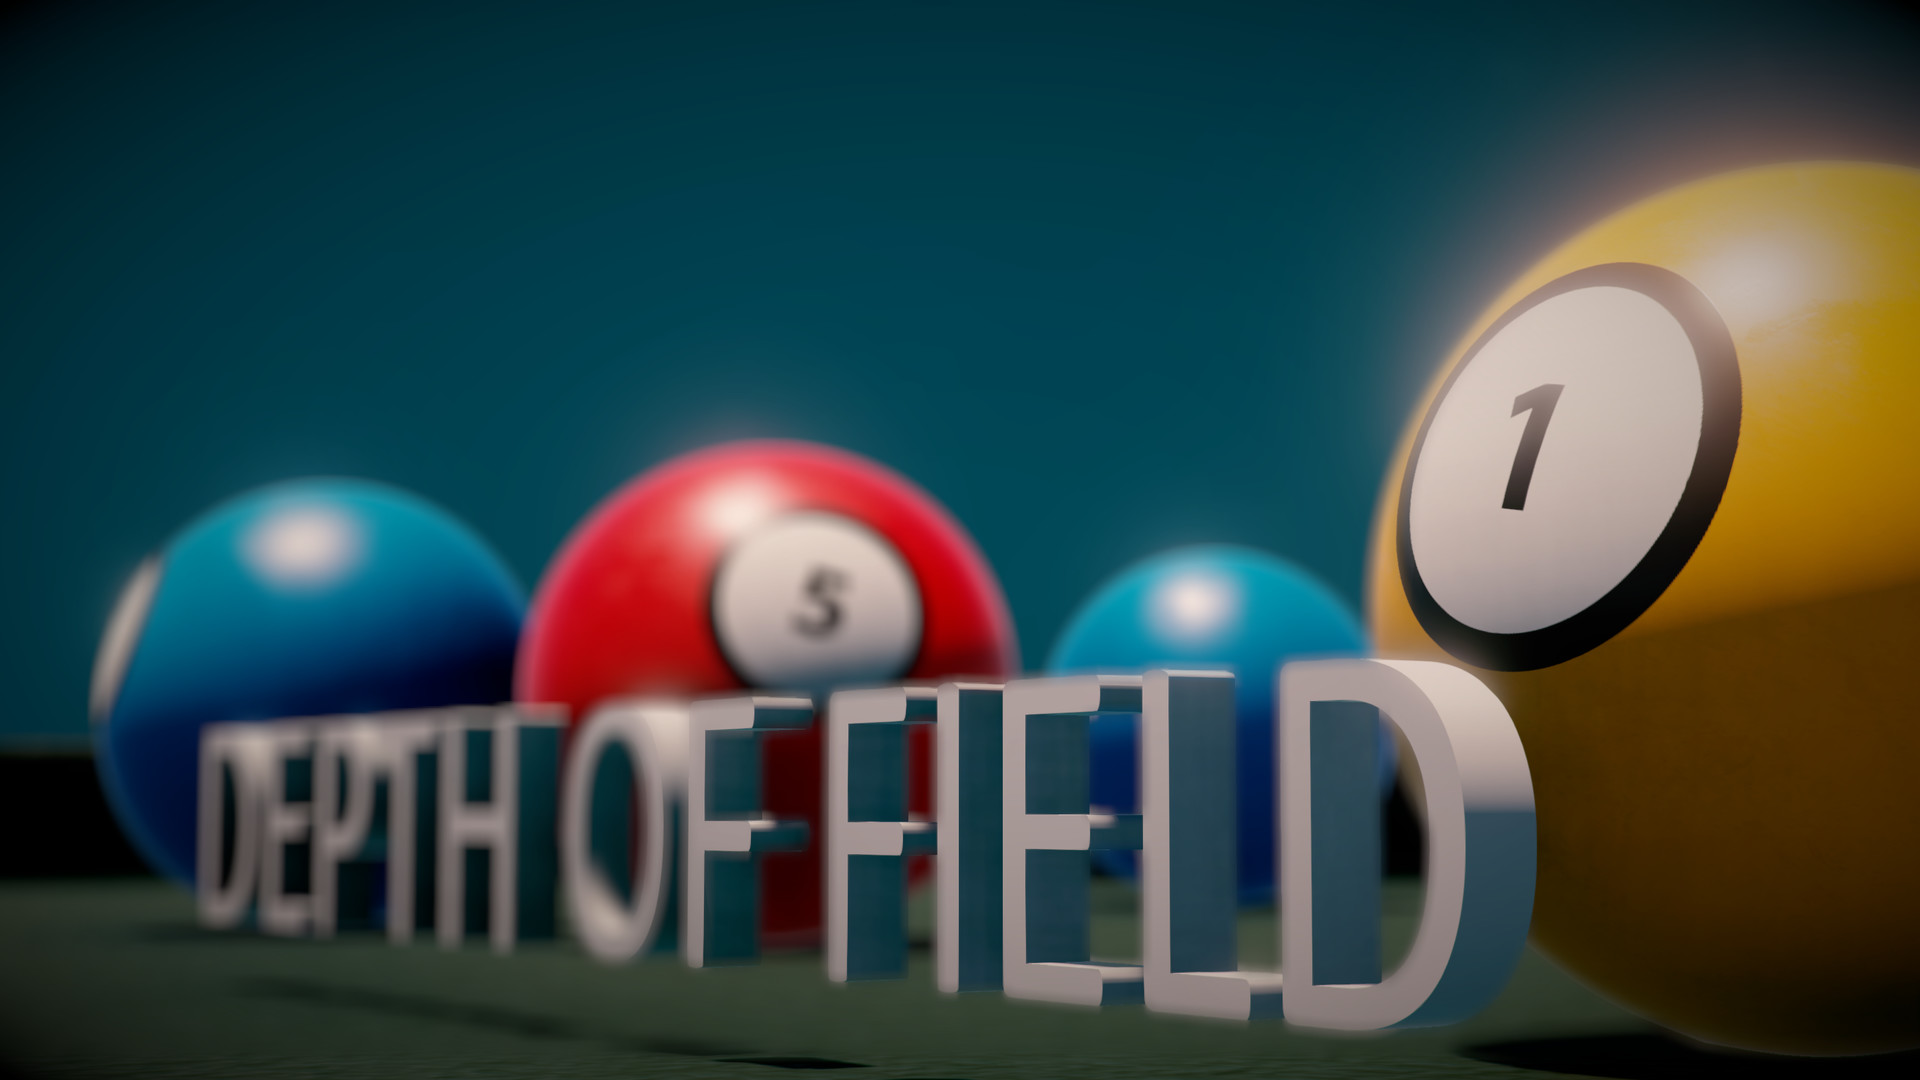 Physical Depth of Field